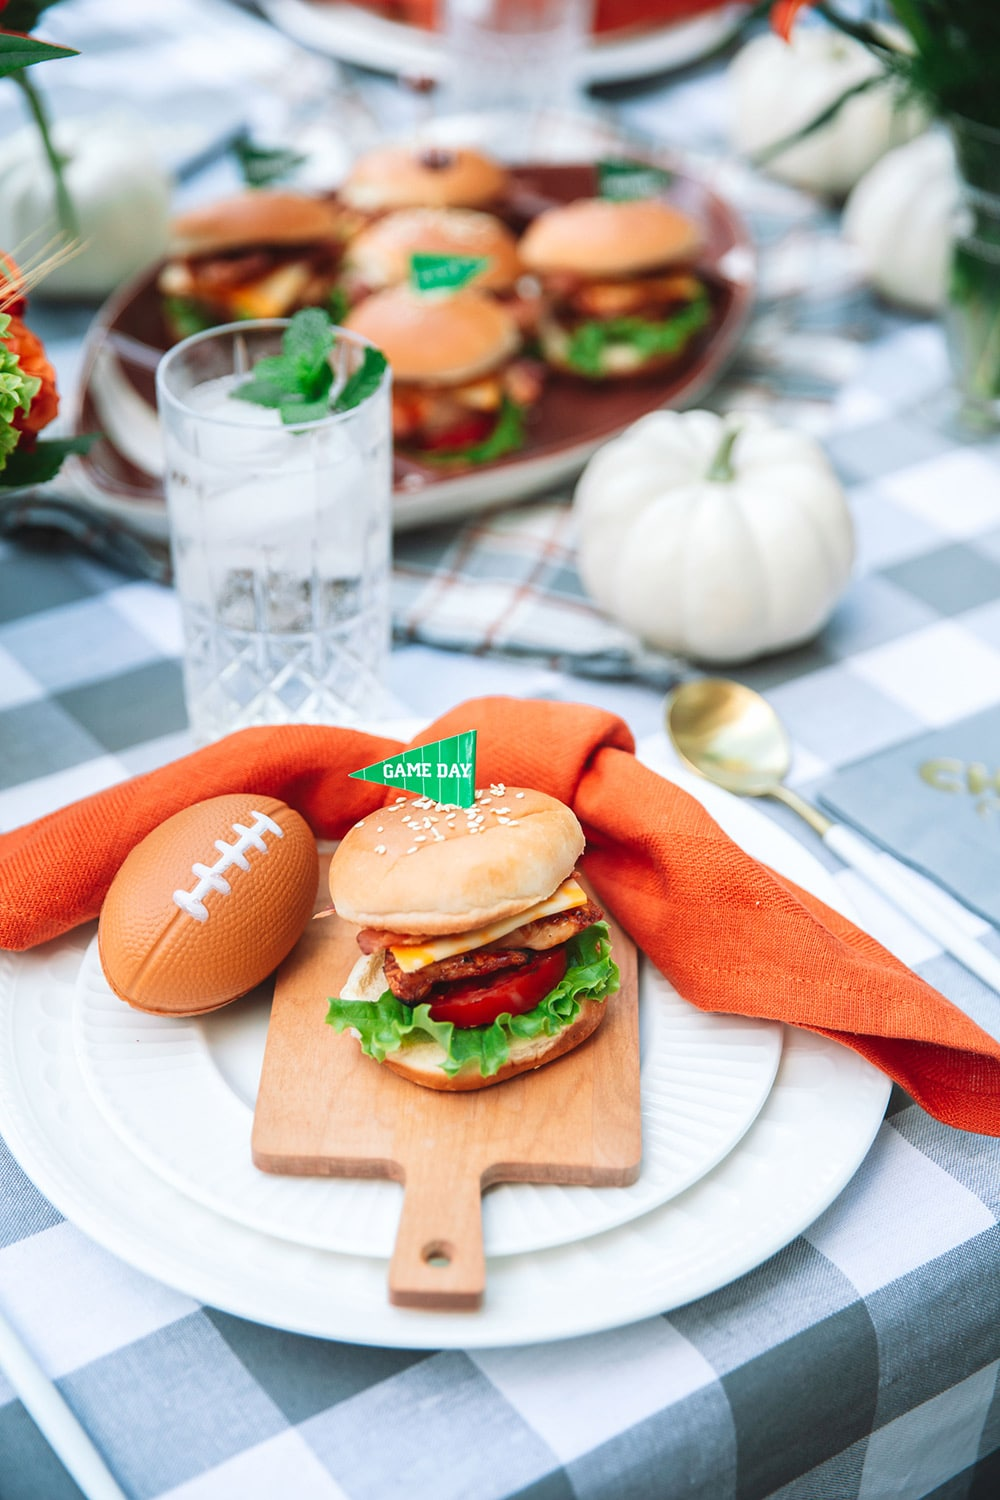 Football Dinner at Home